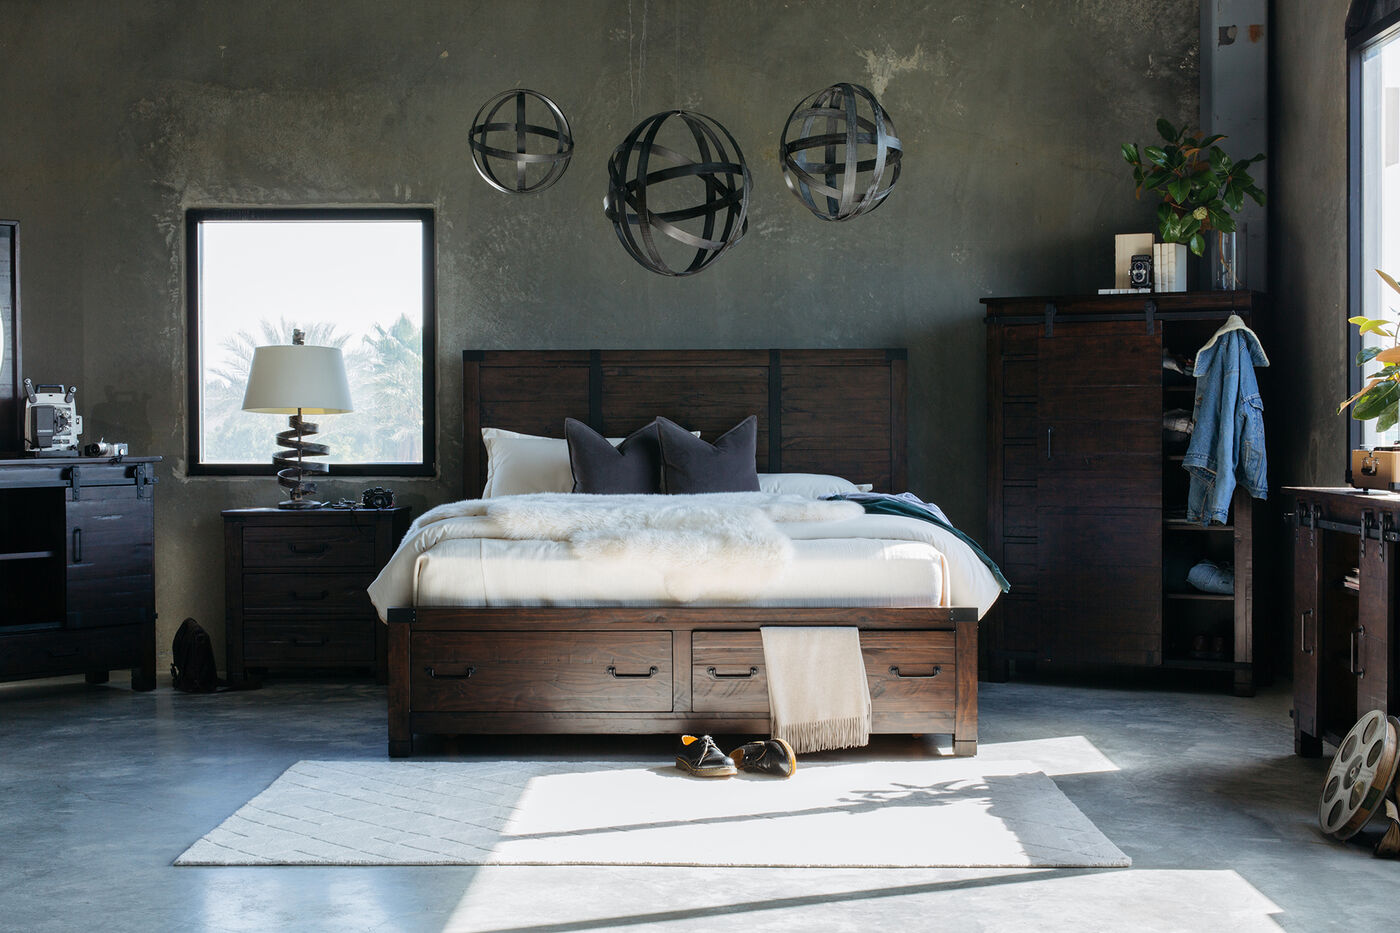 FourPiece Solid Wood Bedroom Set In Rustic Pine Mathis Brothers - Magnussen bedroom furniture reviews